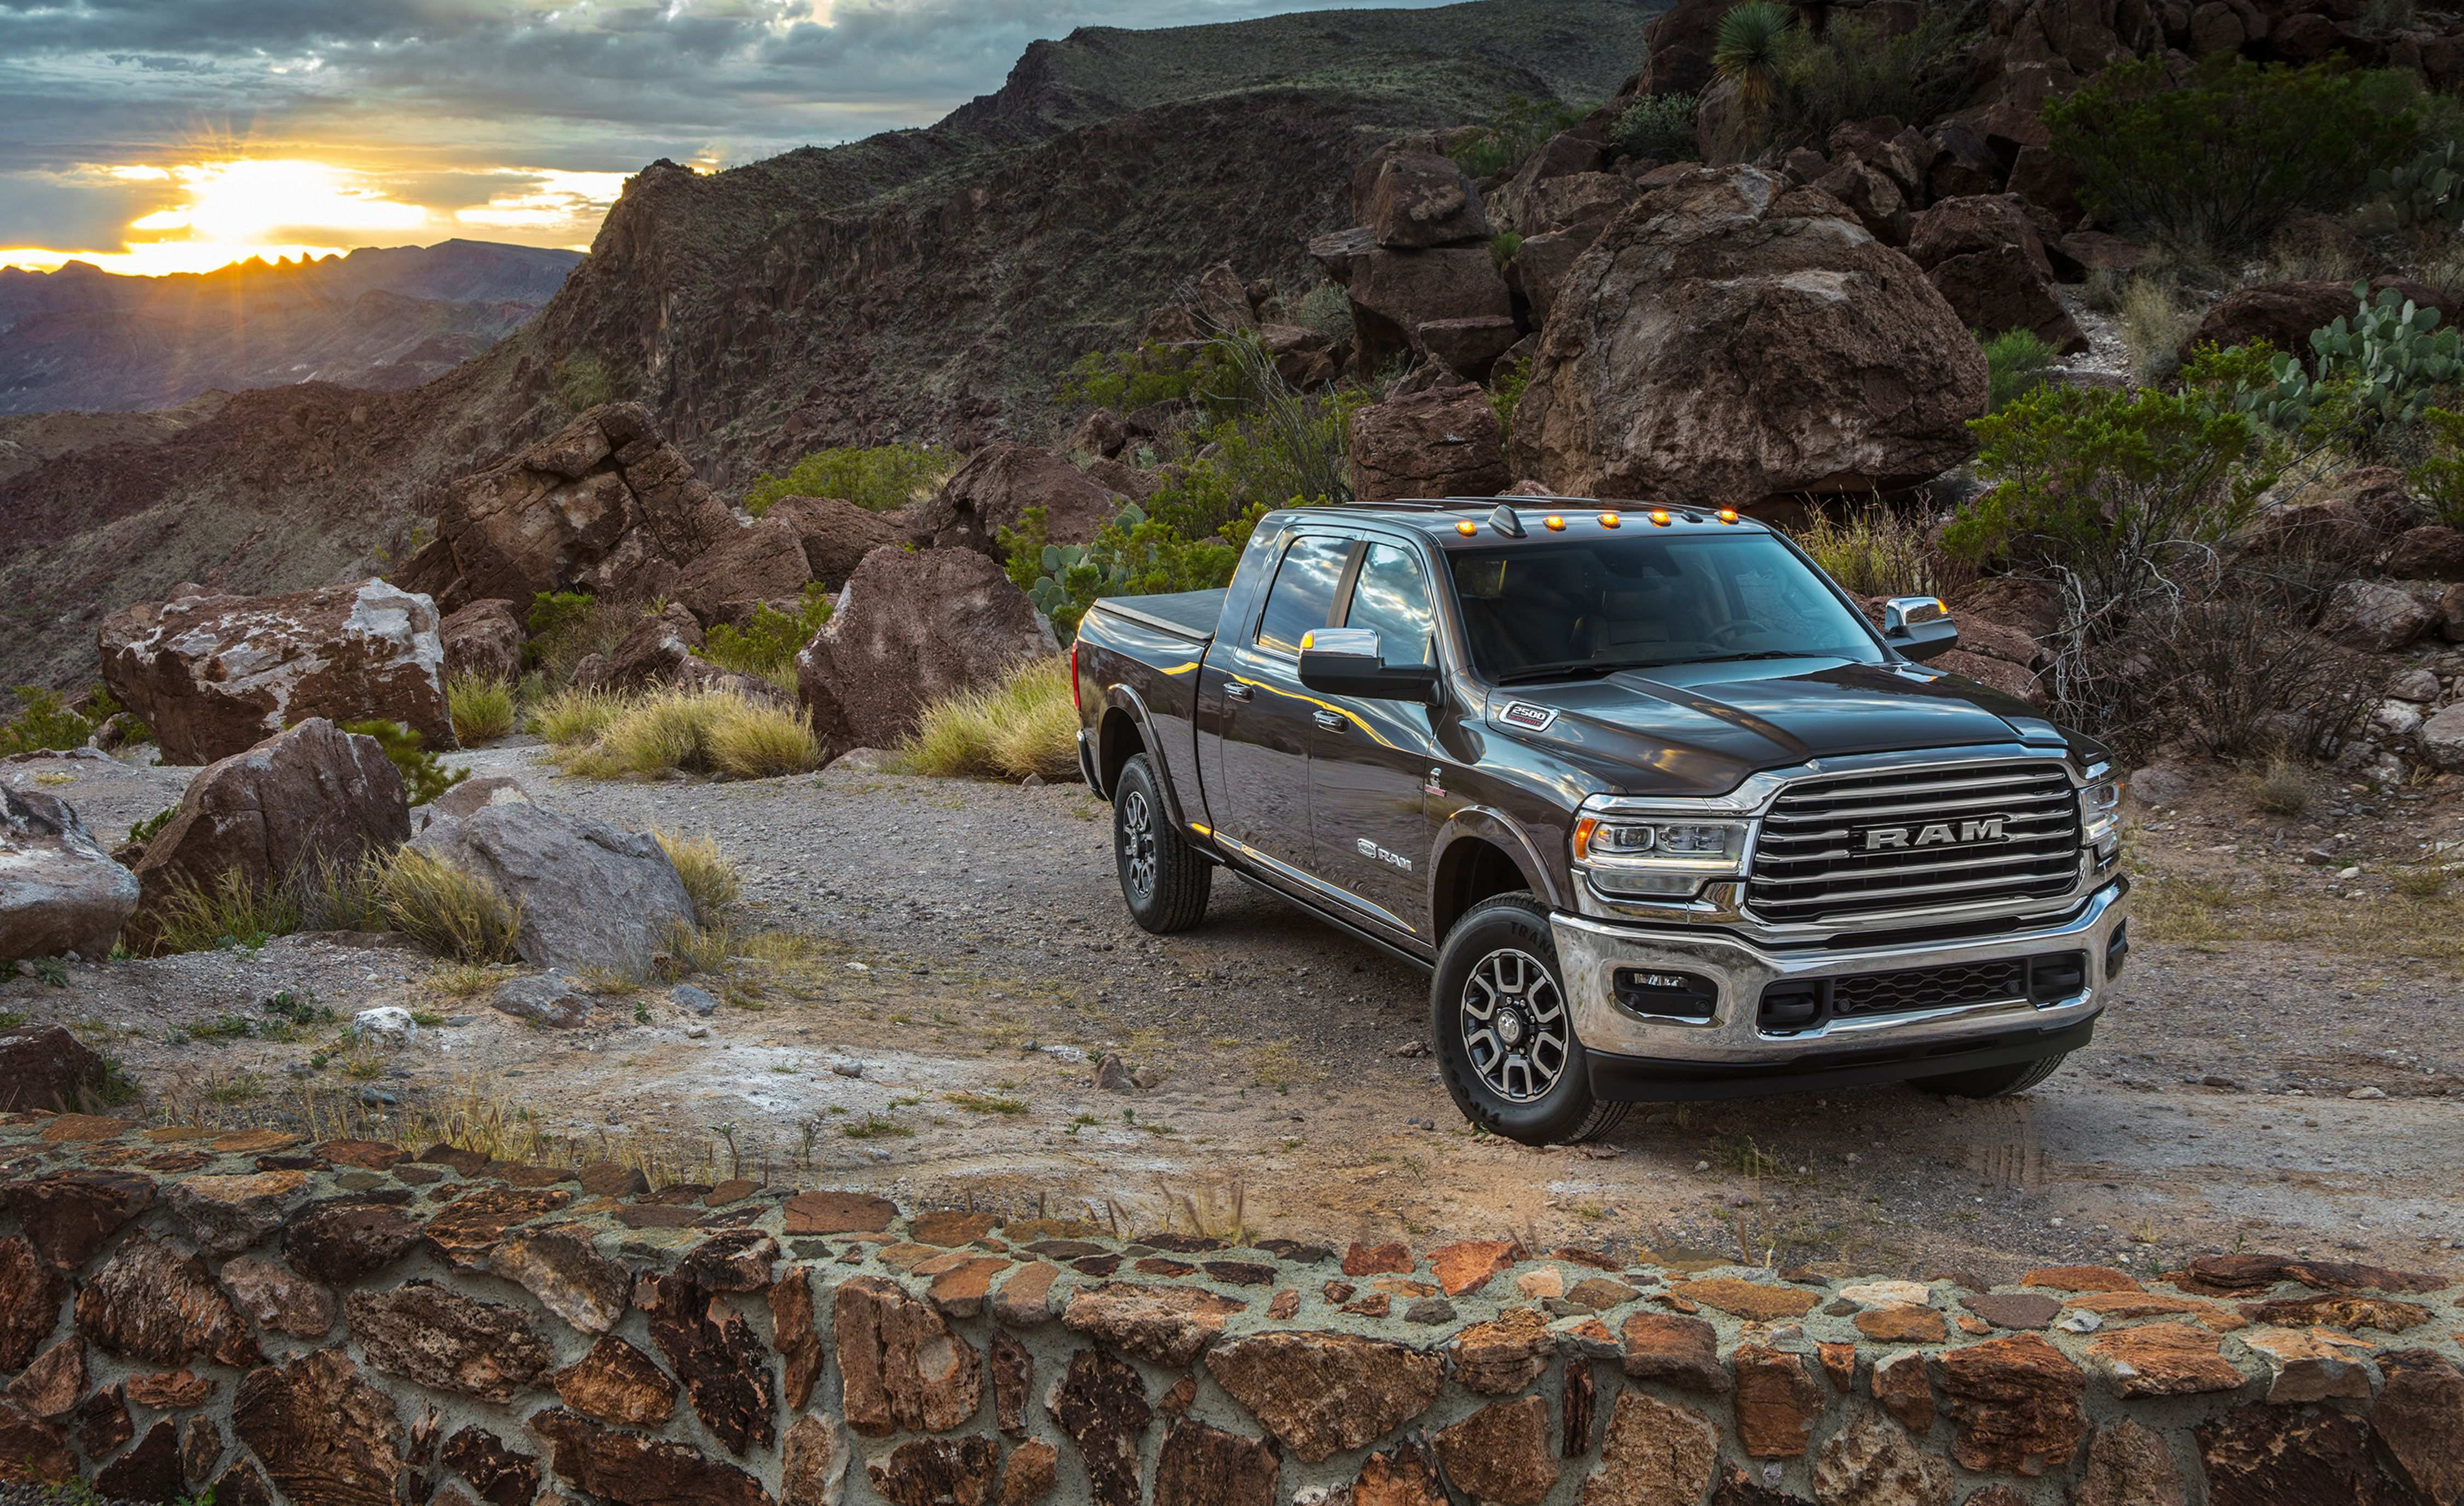 26 All New 2020 Dodge Heavy Duty Pricing with 2020 Dodge Heavy Duty